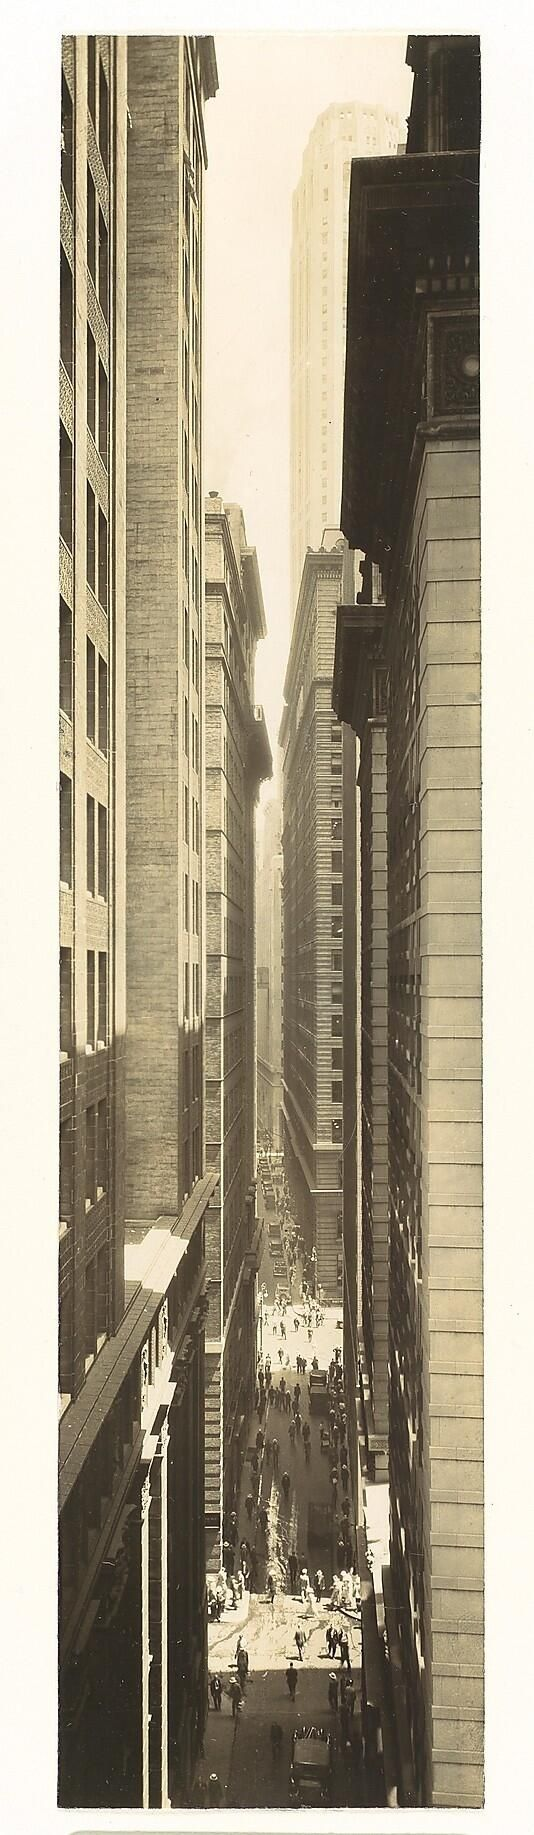 1933: Exchange Place by Berenice Abbott